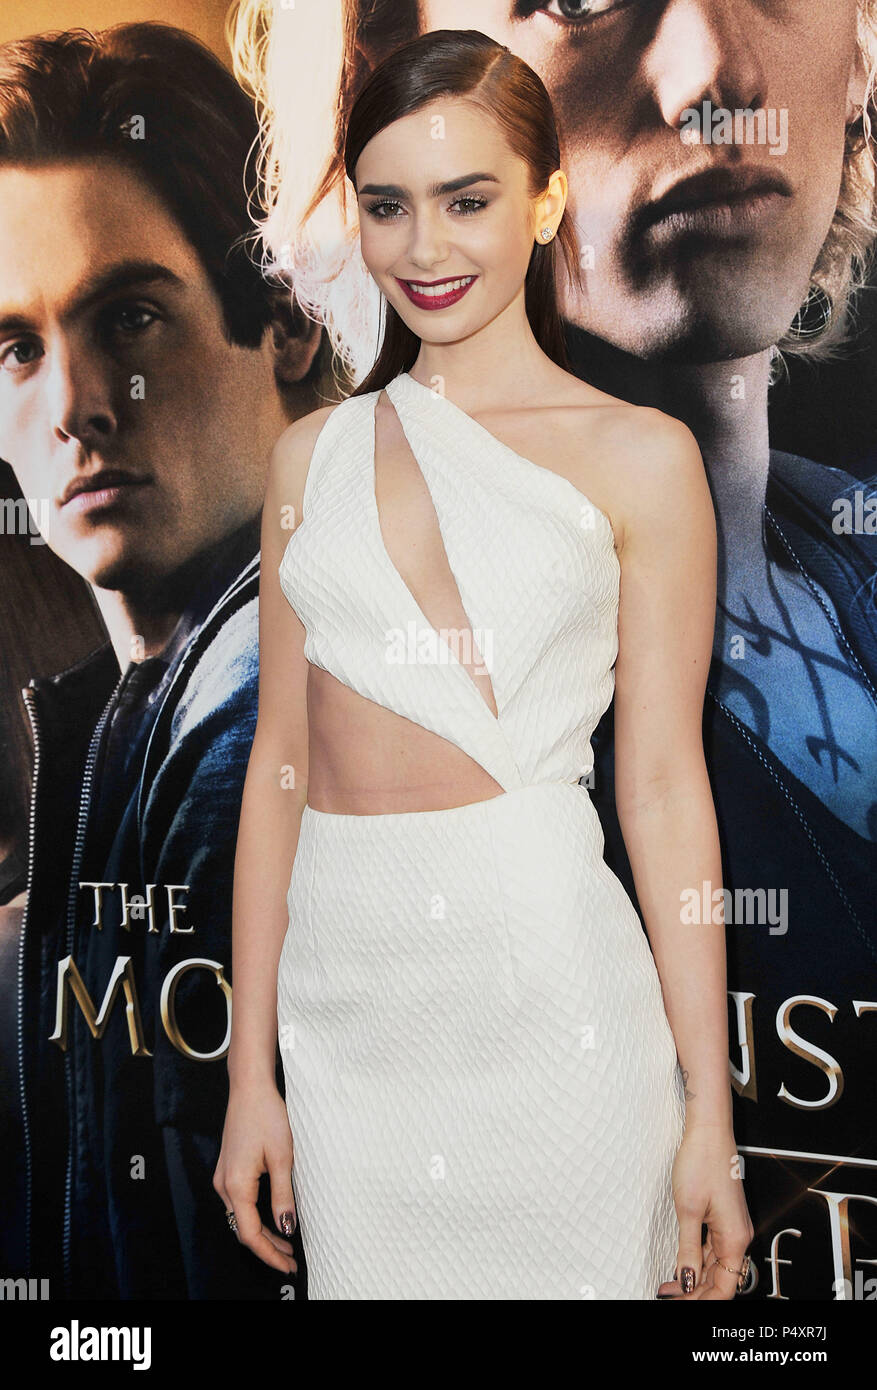 36351f59d19a87 Lily Collins at the The Mortal Instruments City Of Bones Premiere at the  Arclight Theatre In